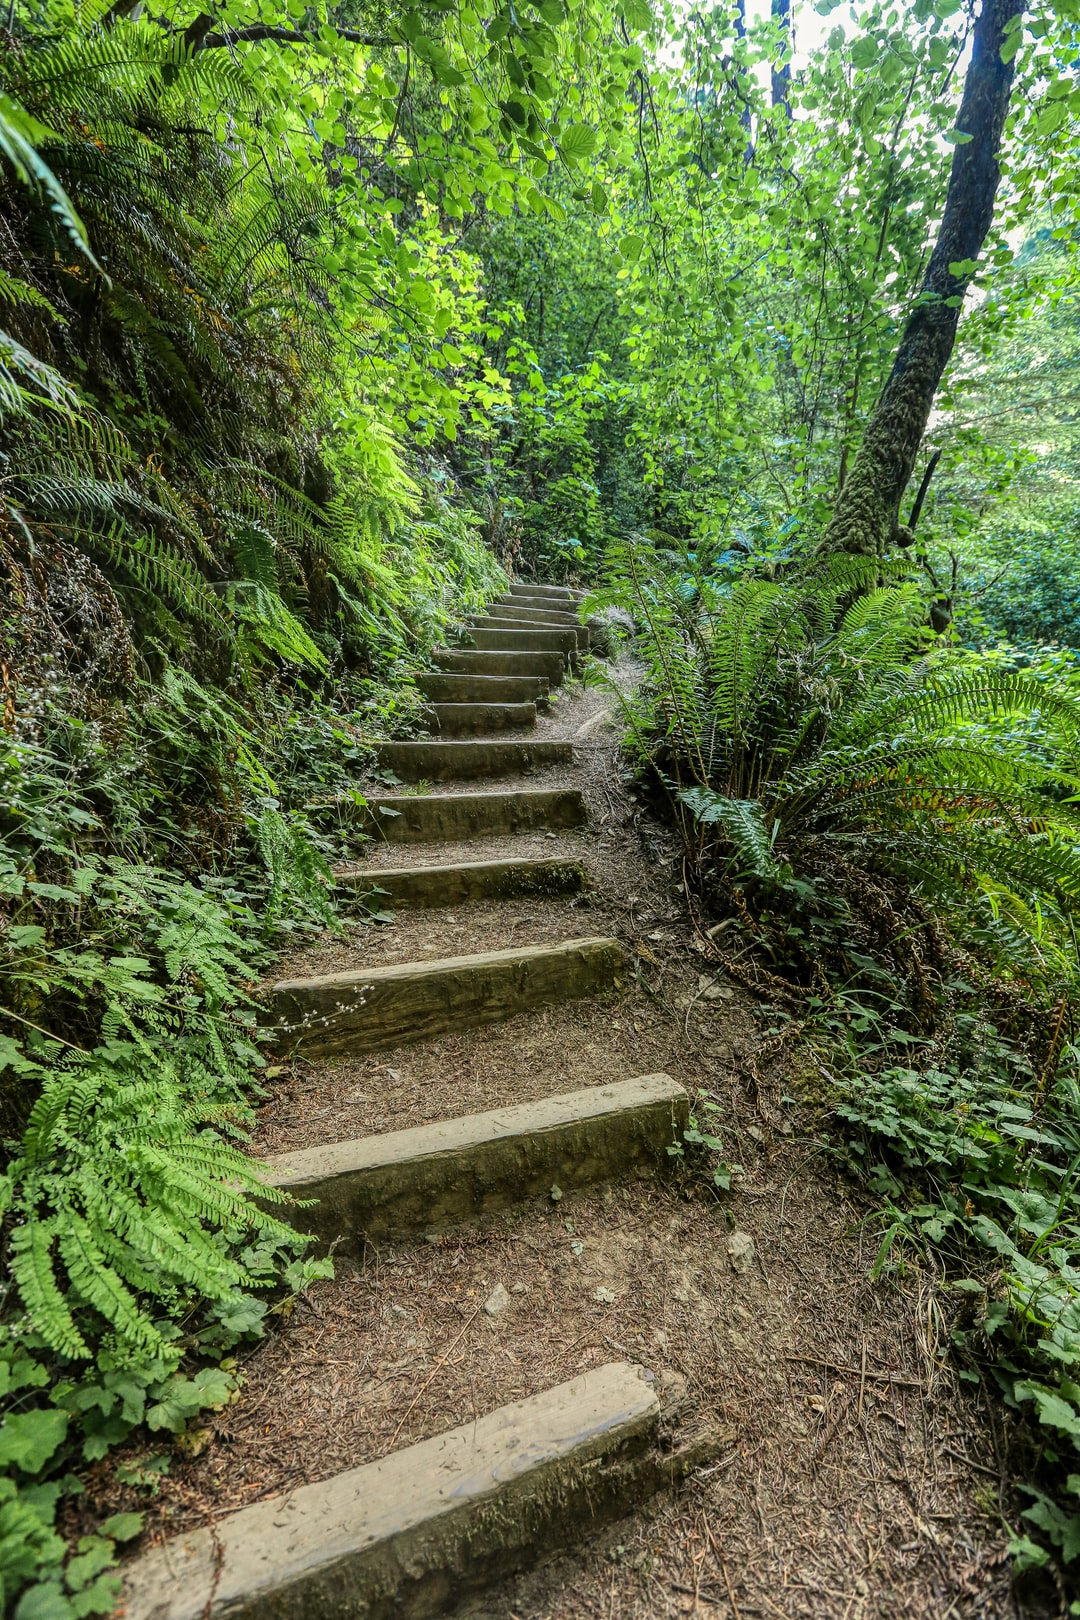 Often times people think the steps are just to help you get up the mountain, but most times they also help the trail by not allowing erosion to create ruts and wash away. So they are beautiful, helpful and practical.